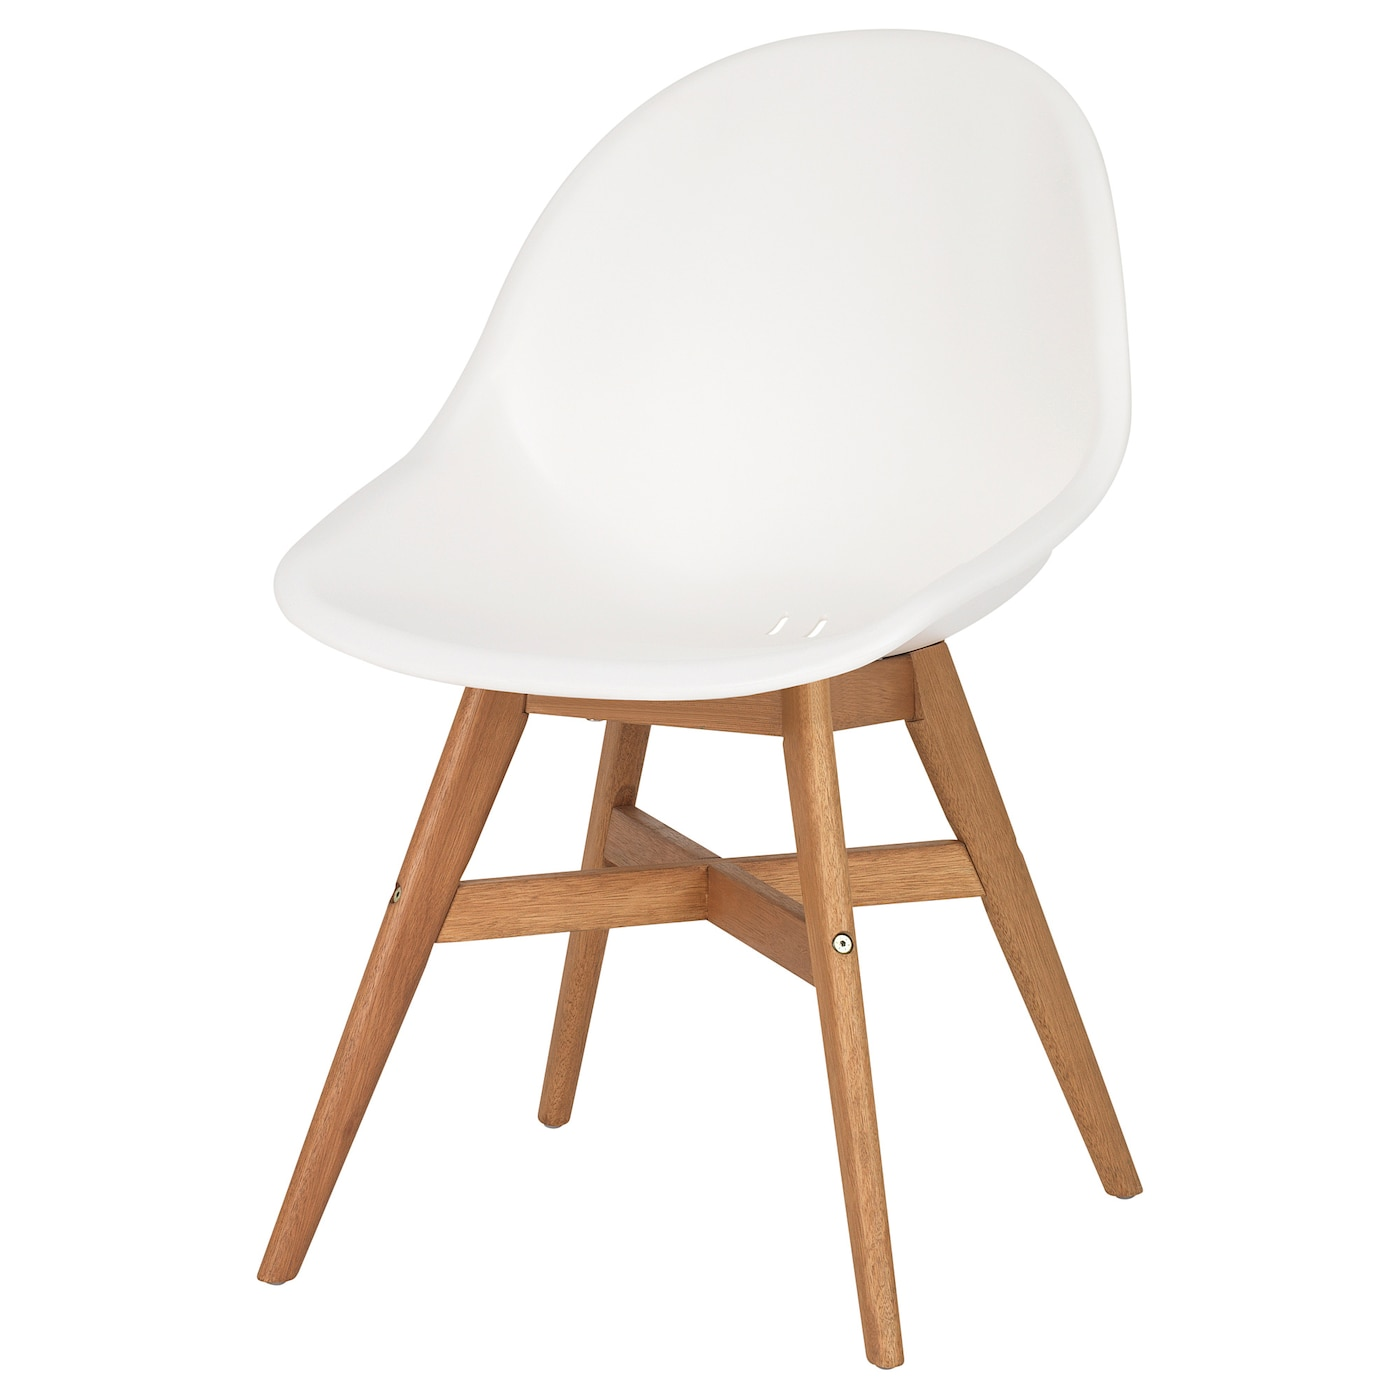 IKEA FANBYN chair Suitable for both indoor and outdoor use.